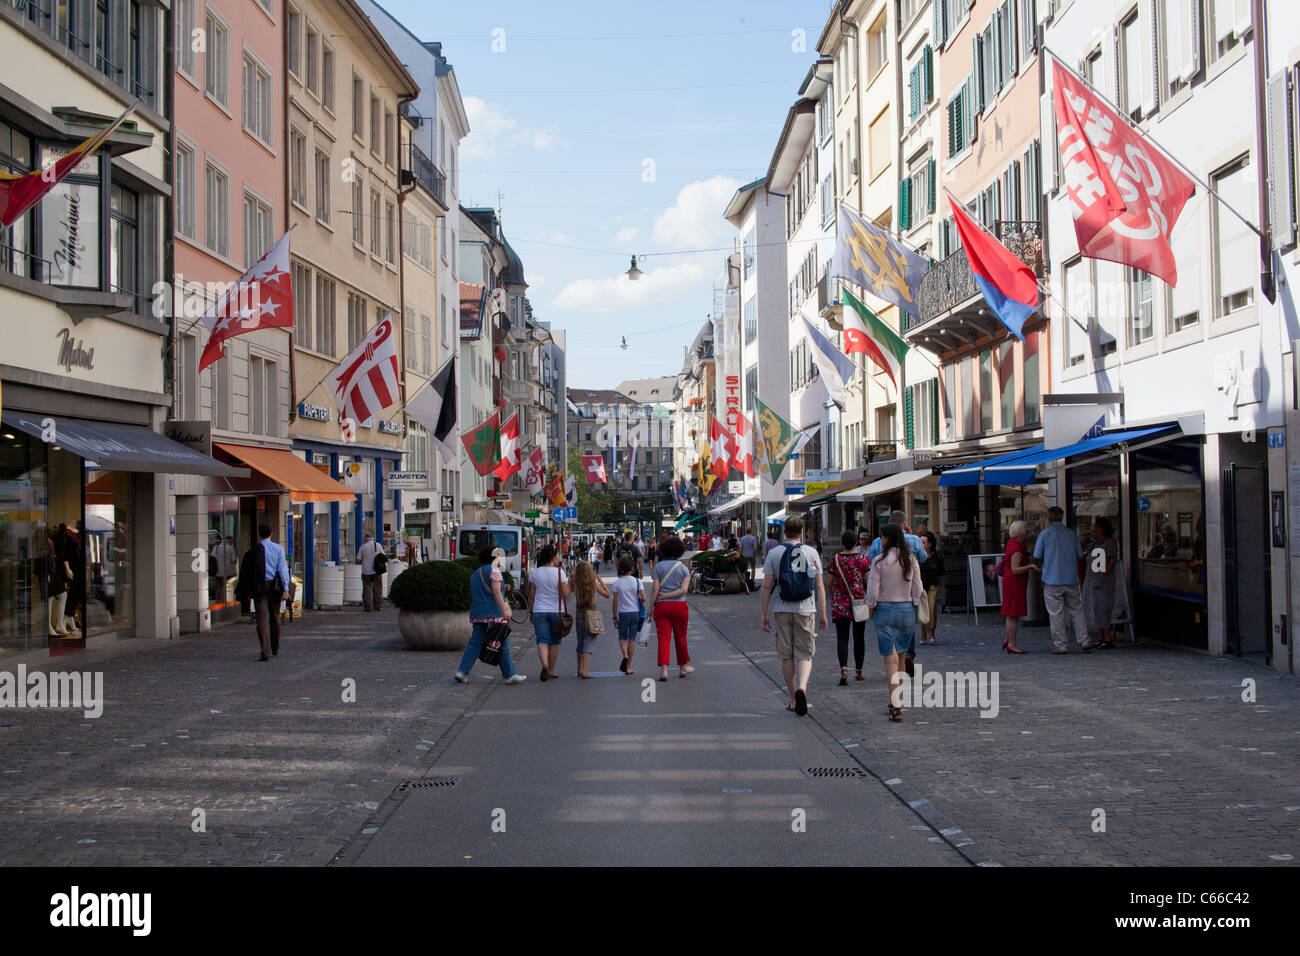 Tourists shopping in Zürich, Switzerland - Stock Image